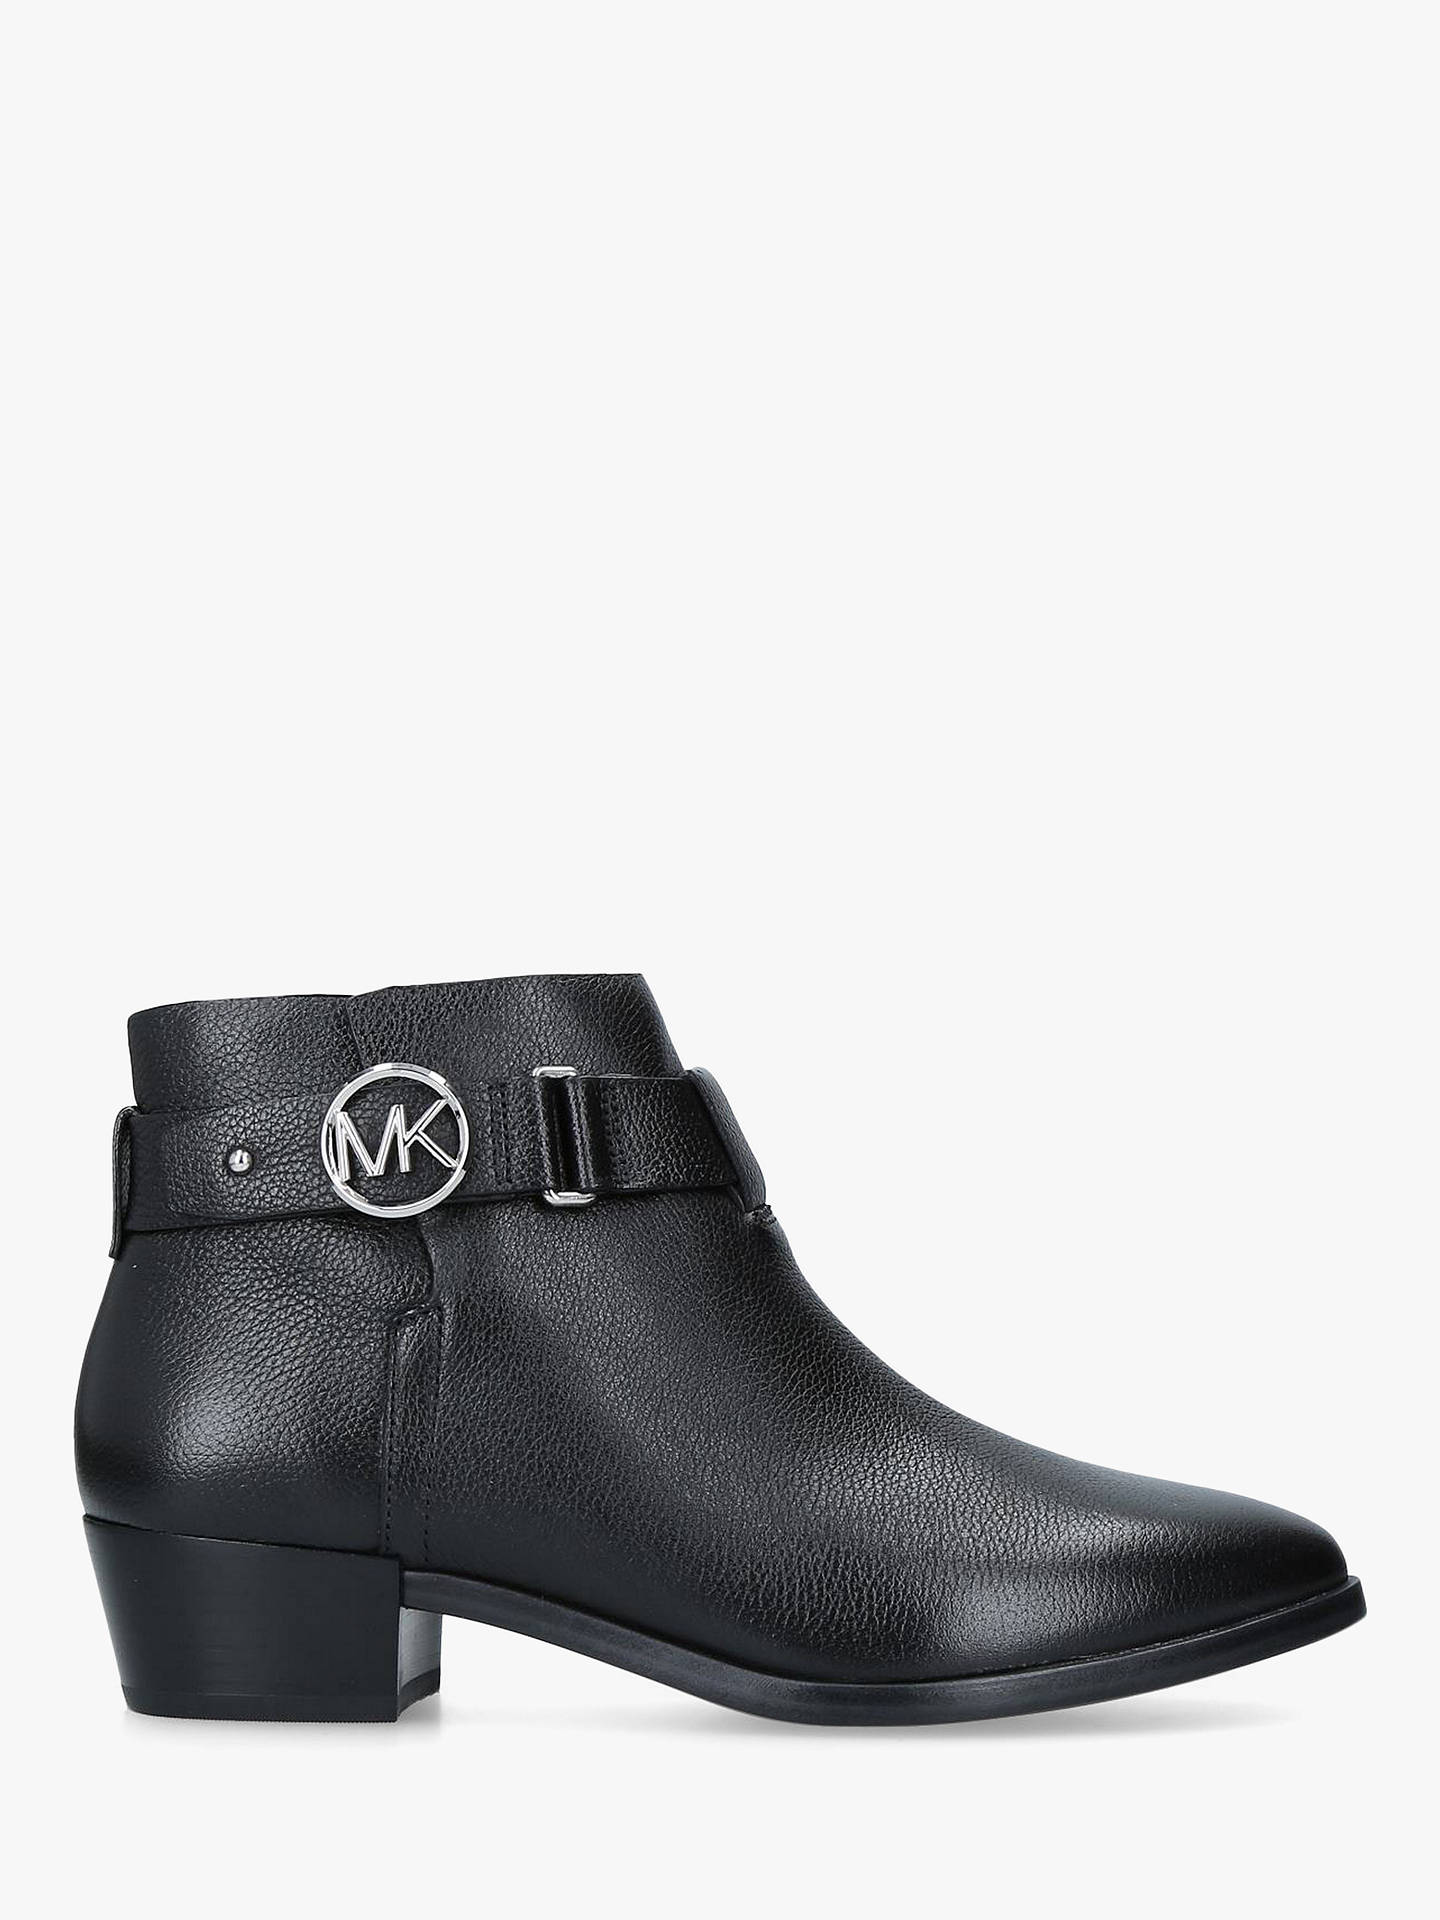 d1361d58909f Buy MICHAEL Michael Kors Harland Ankle Boots